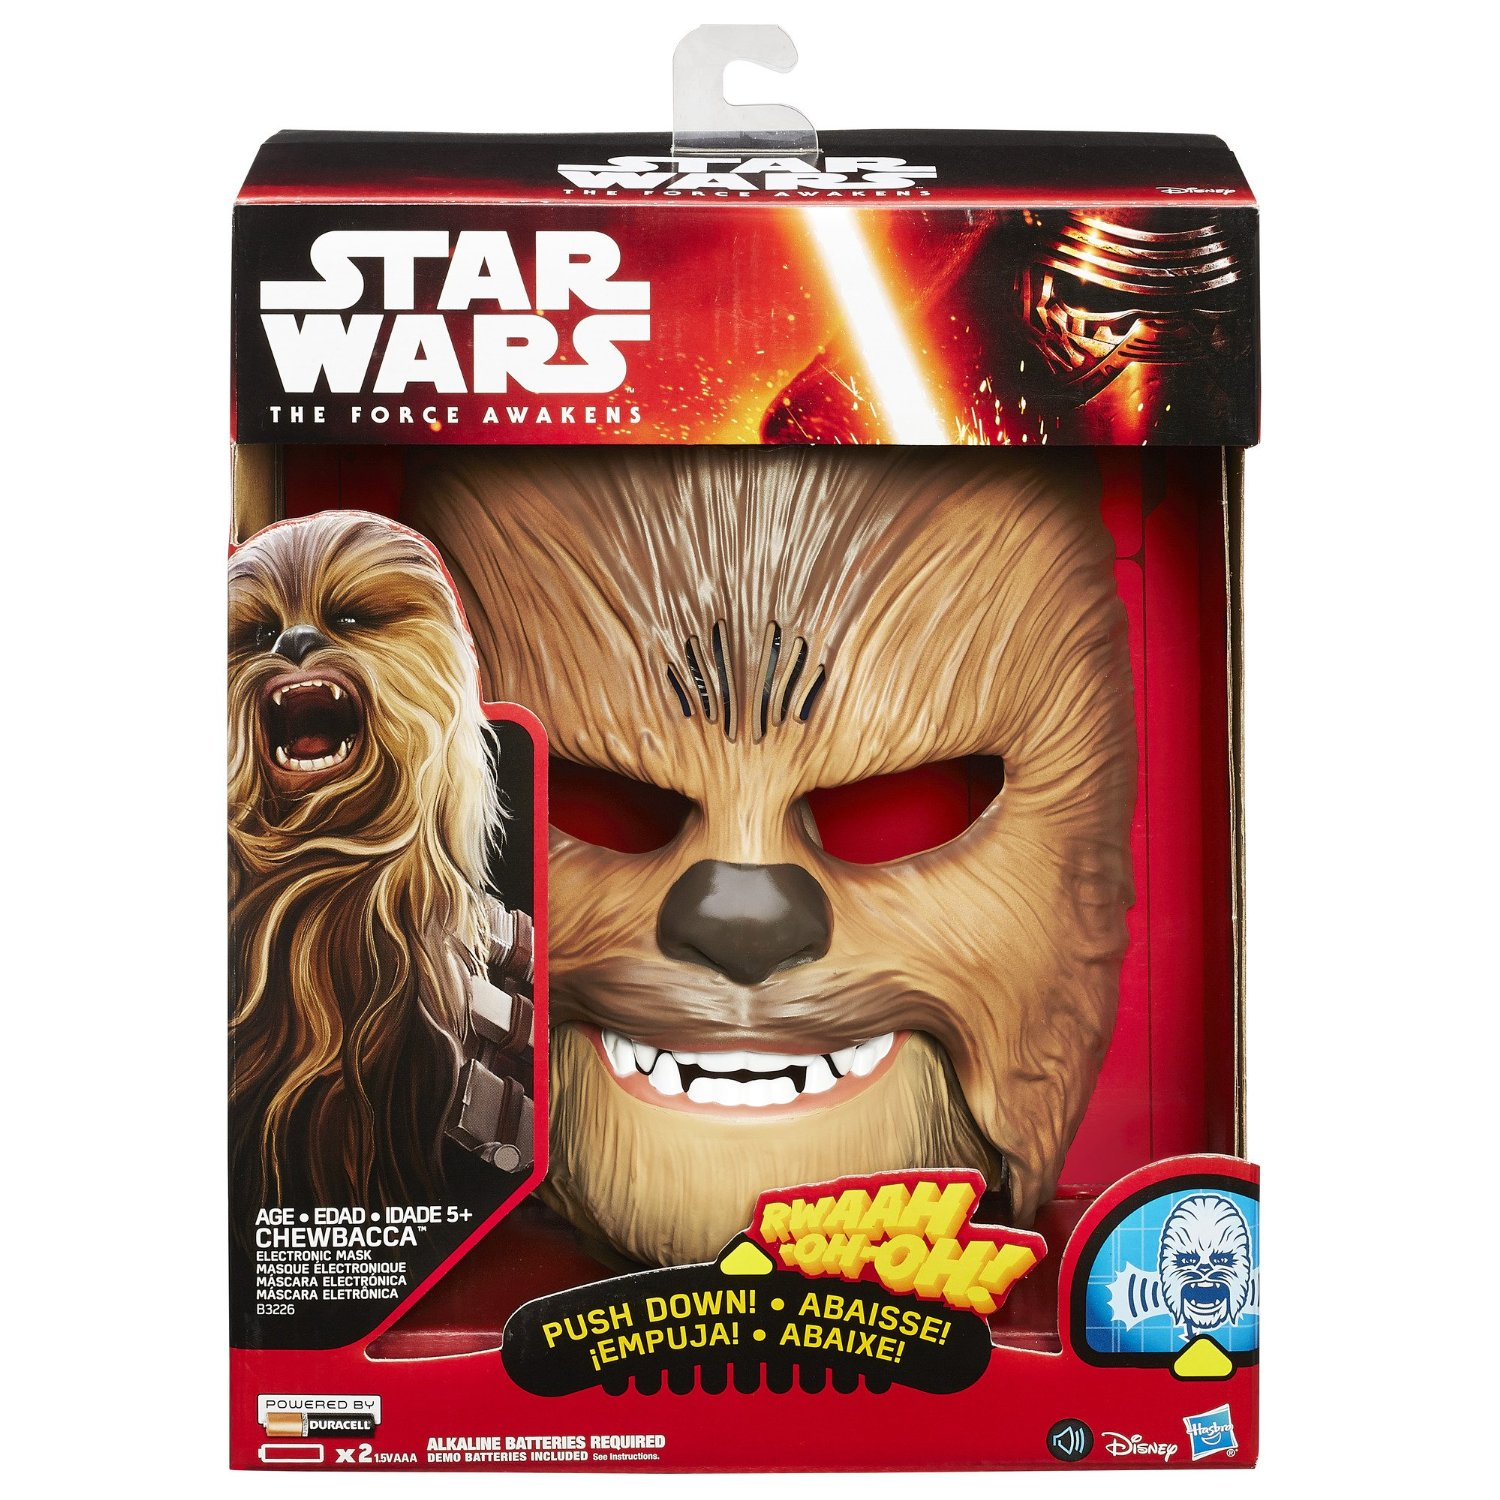 Star Wars The Force Awakens Chewbacca Electronic Mask, Hasbro